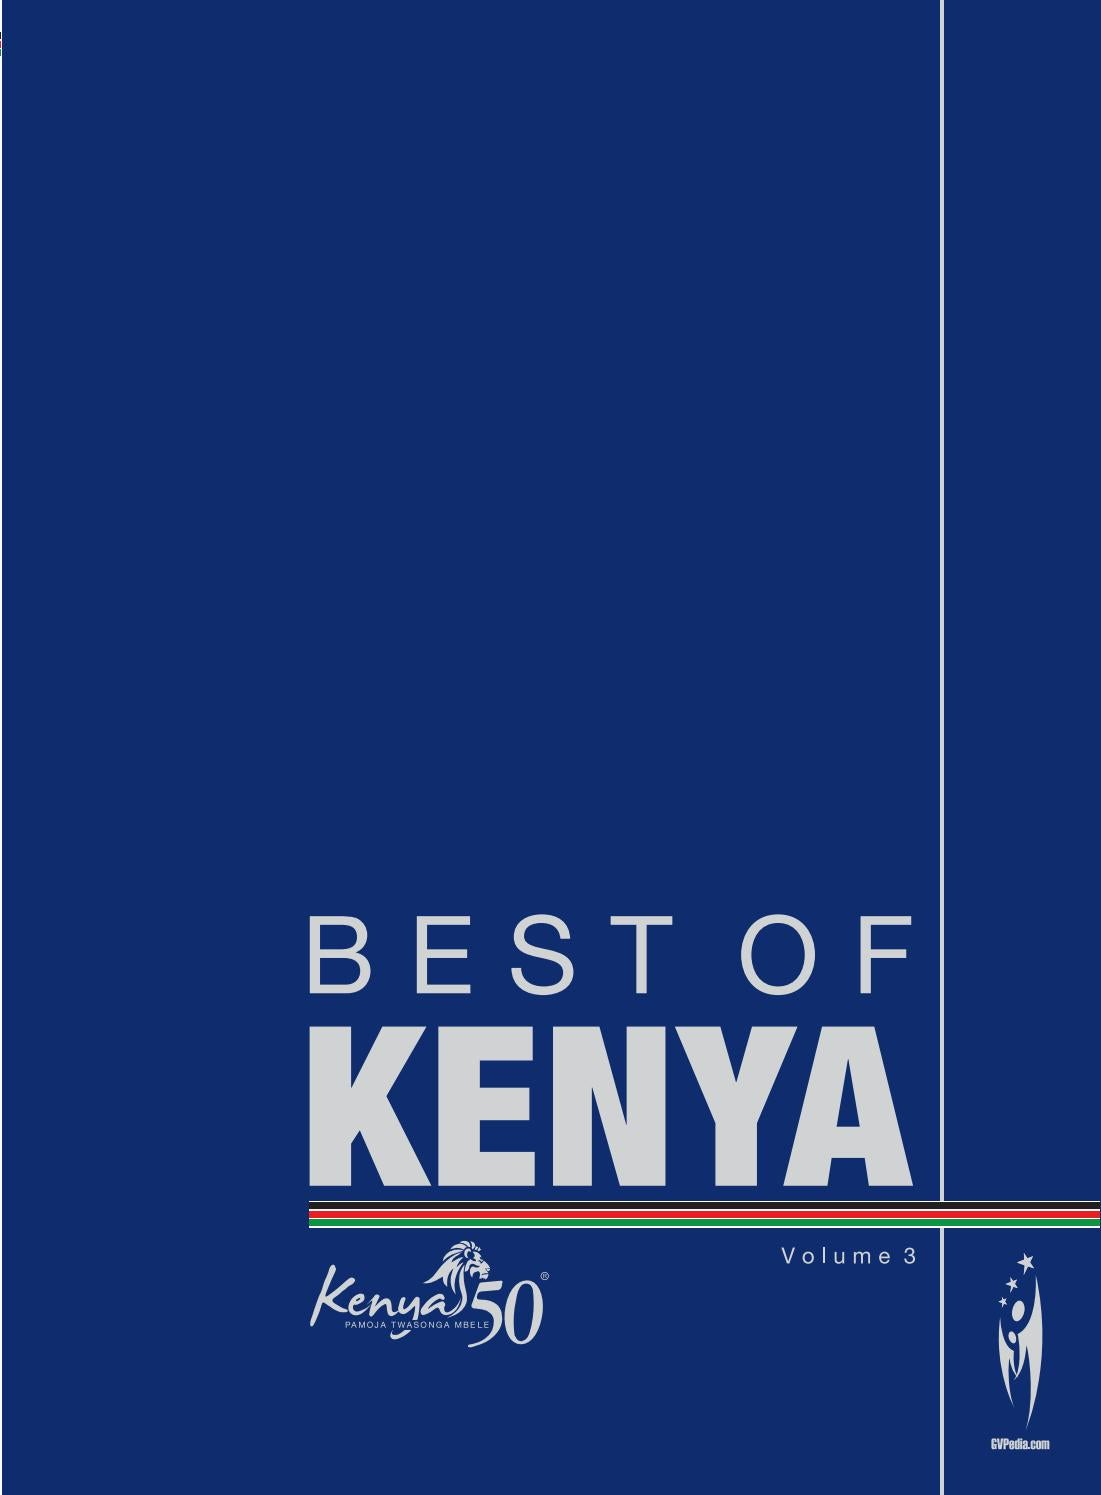 BEST OF KENYA Volume 3 by Sven Boermeester issuu